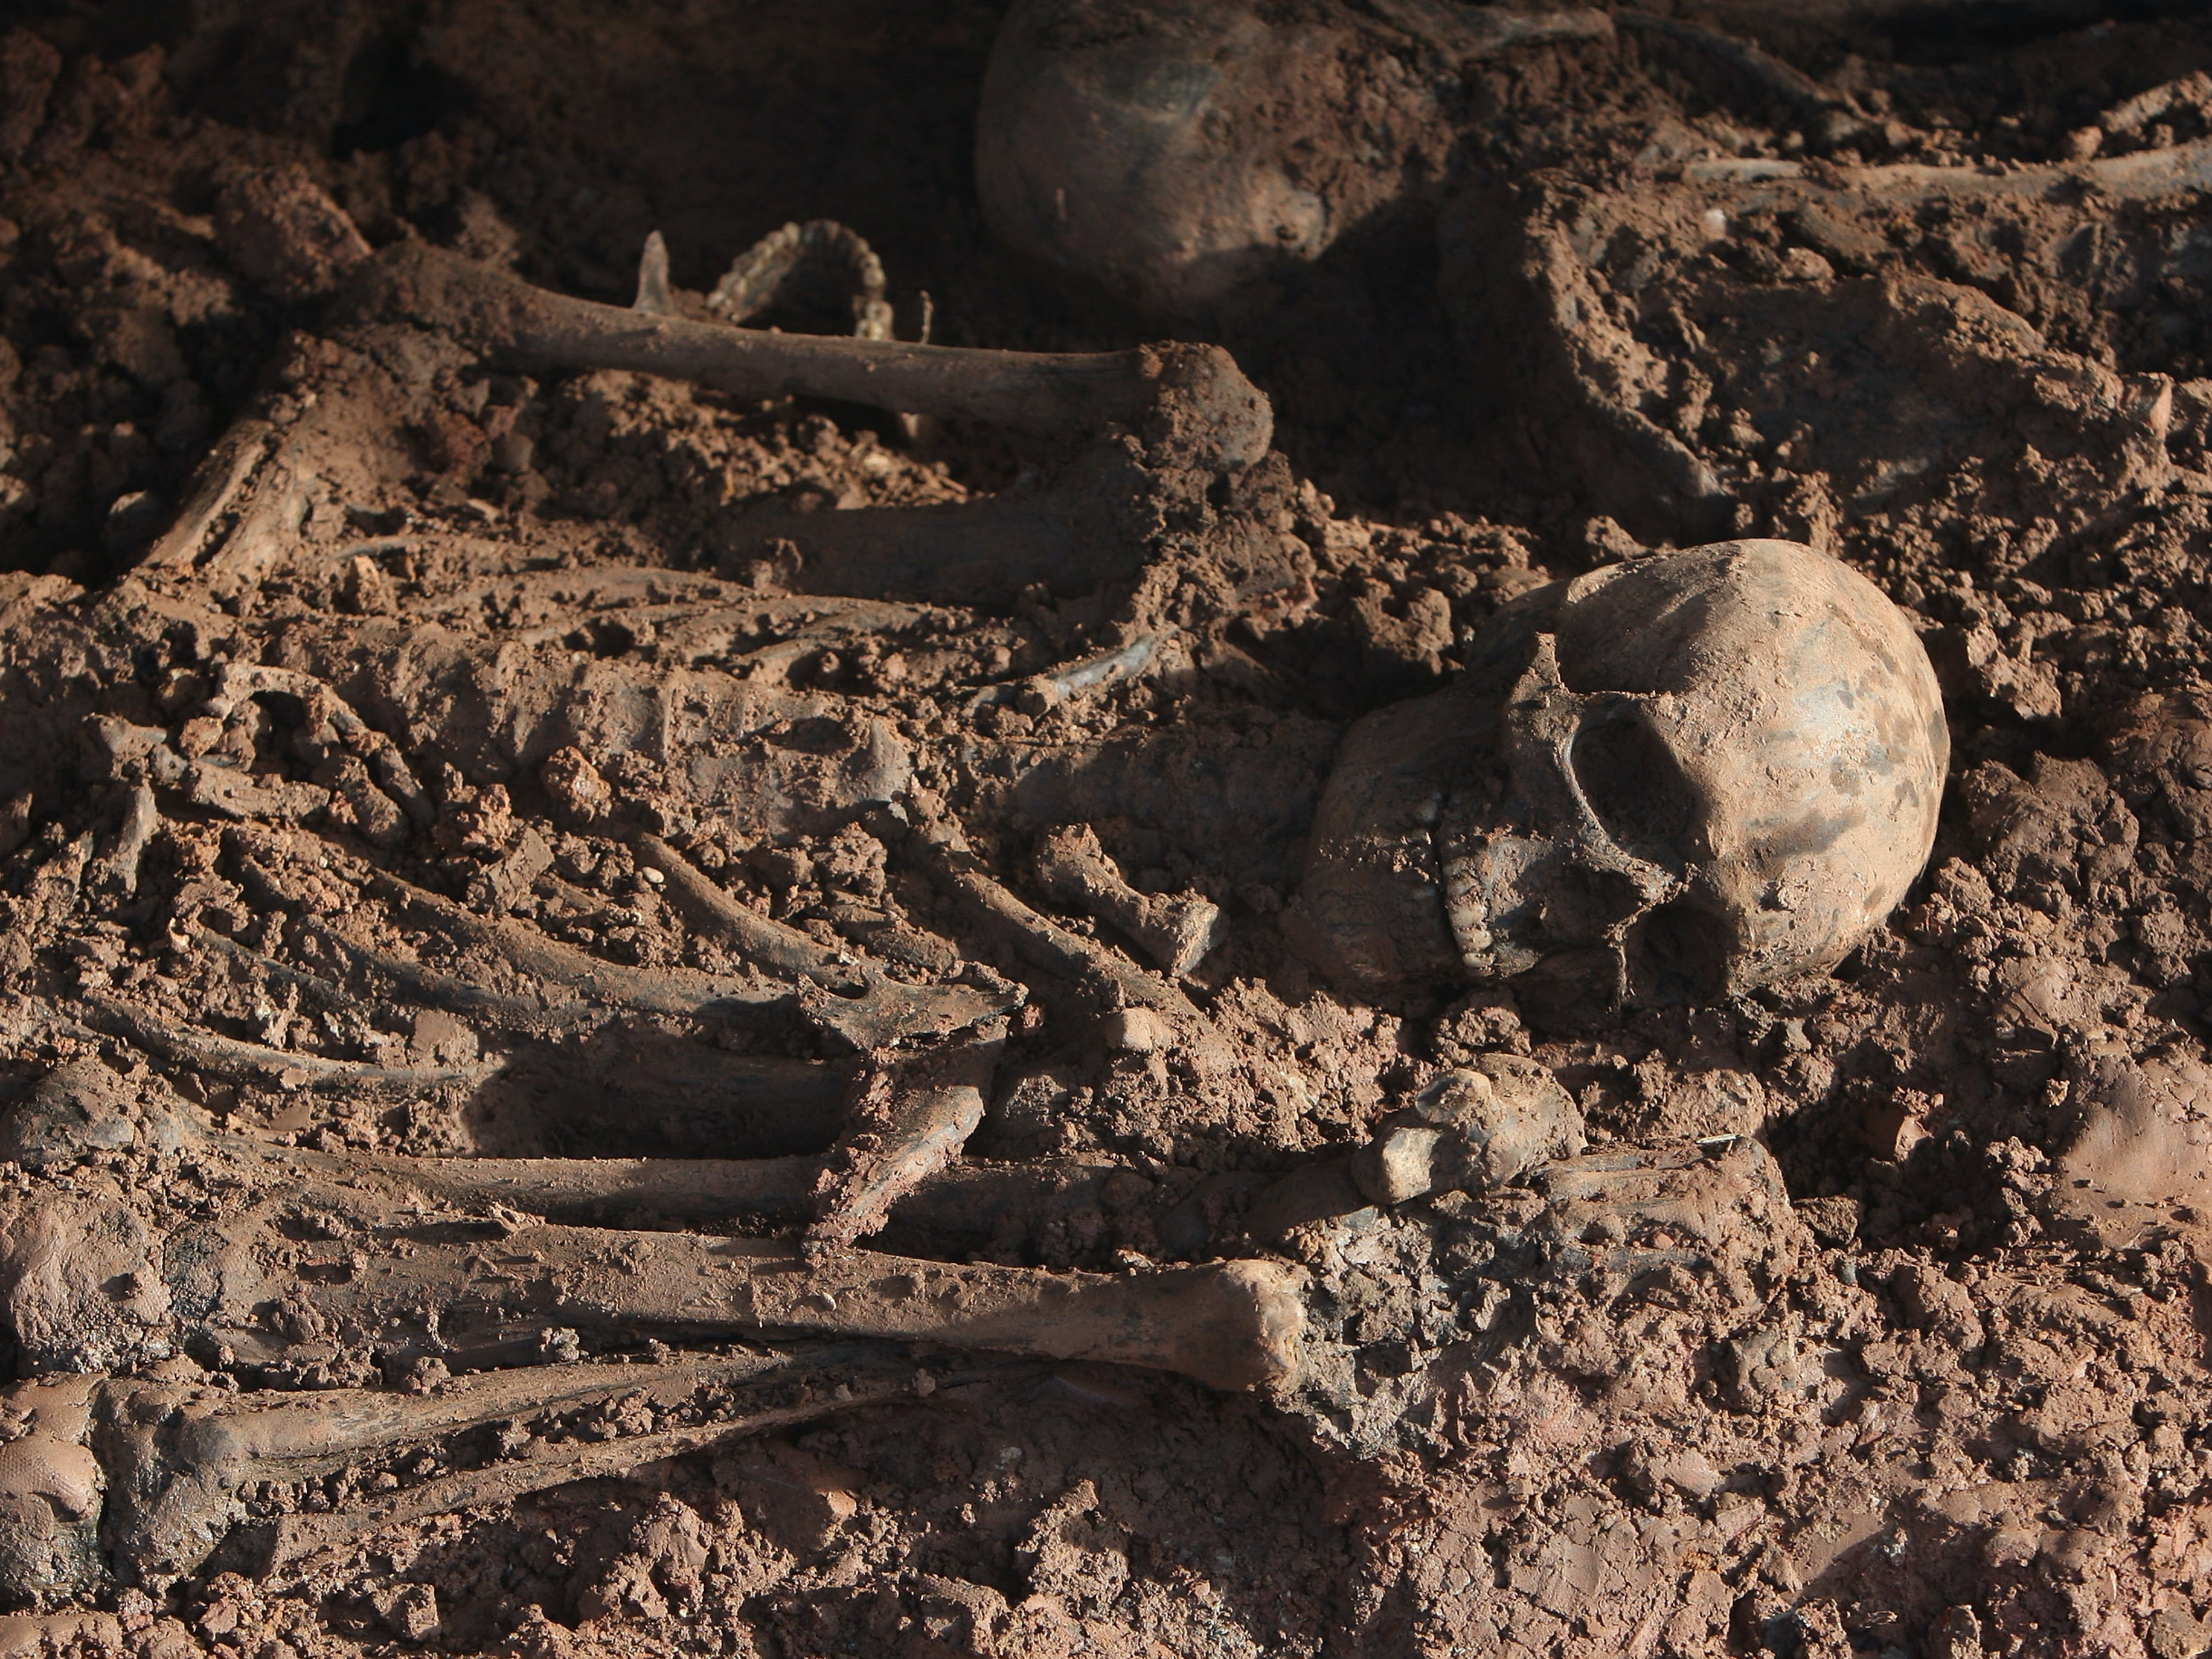 KASSEL, GERMANY - JANUARY 25:  A skeleton lies in a mass grave containing the remains of approximately 60 bodies discovered earlier in the week at a construction site on January 25, 2008 in Kassel, Germany. A factory producing tanks for the Nazis occupied the site during World War II, though forensic examiners say initial investigations lay doubt to the claim that the bodies are of slave labourers who worked at the factory. One examiner said that initial observations of the dental characteristics of the skeletons indicate the bodies date older than from World War II. He also said the cause of death was likely from disease, possibly tuberculosis.  (Photo by Sean Gallup/Getty Images)